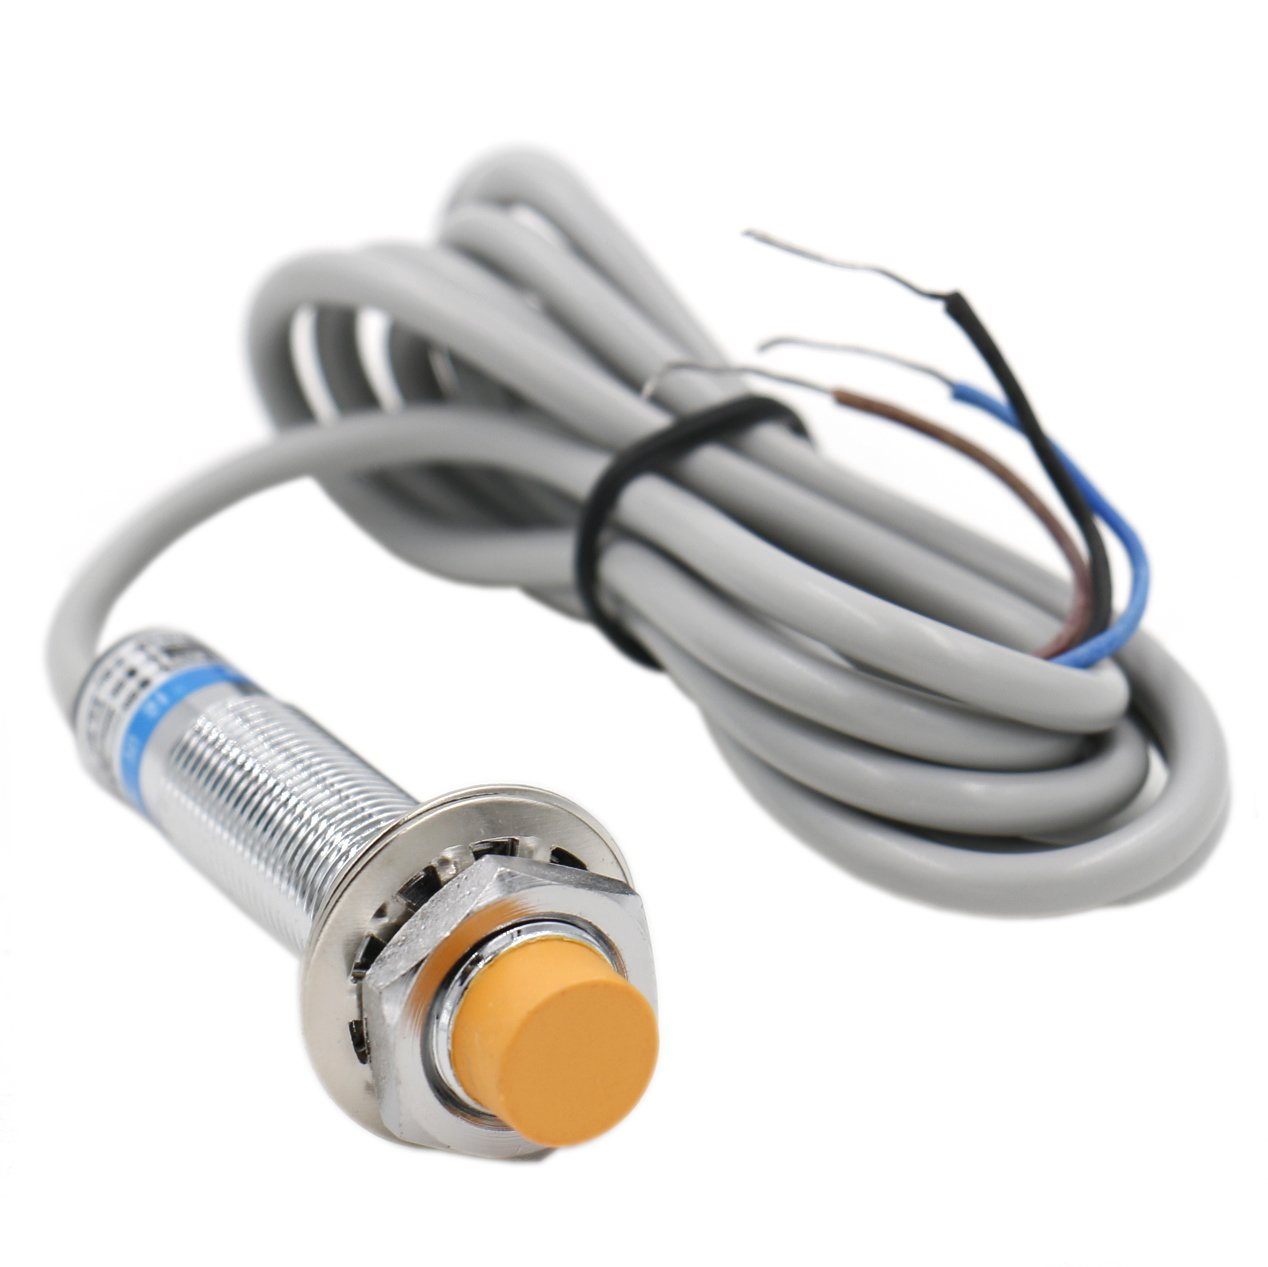 Heschen inductive proximity sensor switch LJ12A3-4-Z/AX detector 4 mm 6-36 VDC 300mA NPN normally closed(NC) 3 wire Heschen Electric Co.Ltd HS-LJ12A3-4-Z/AX